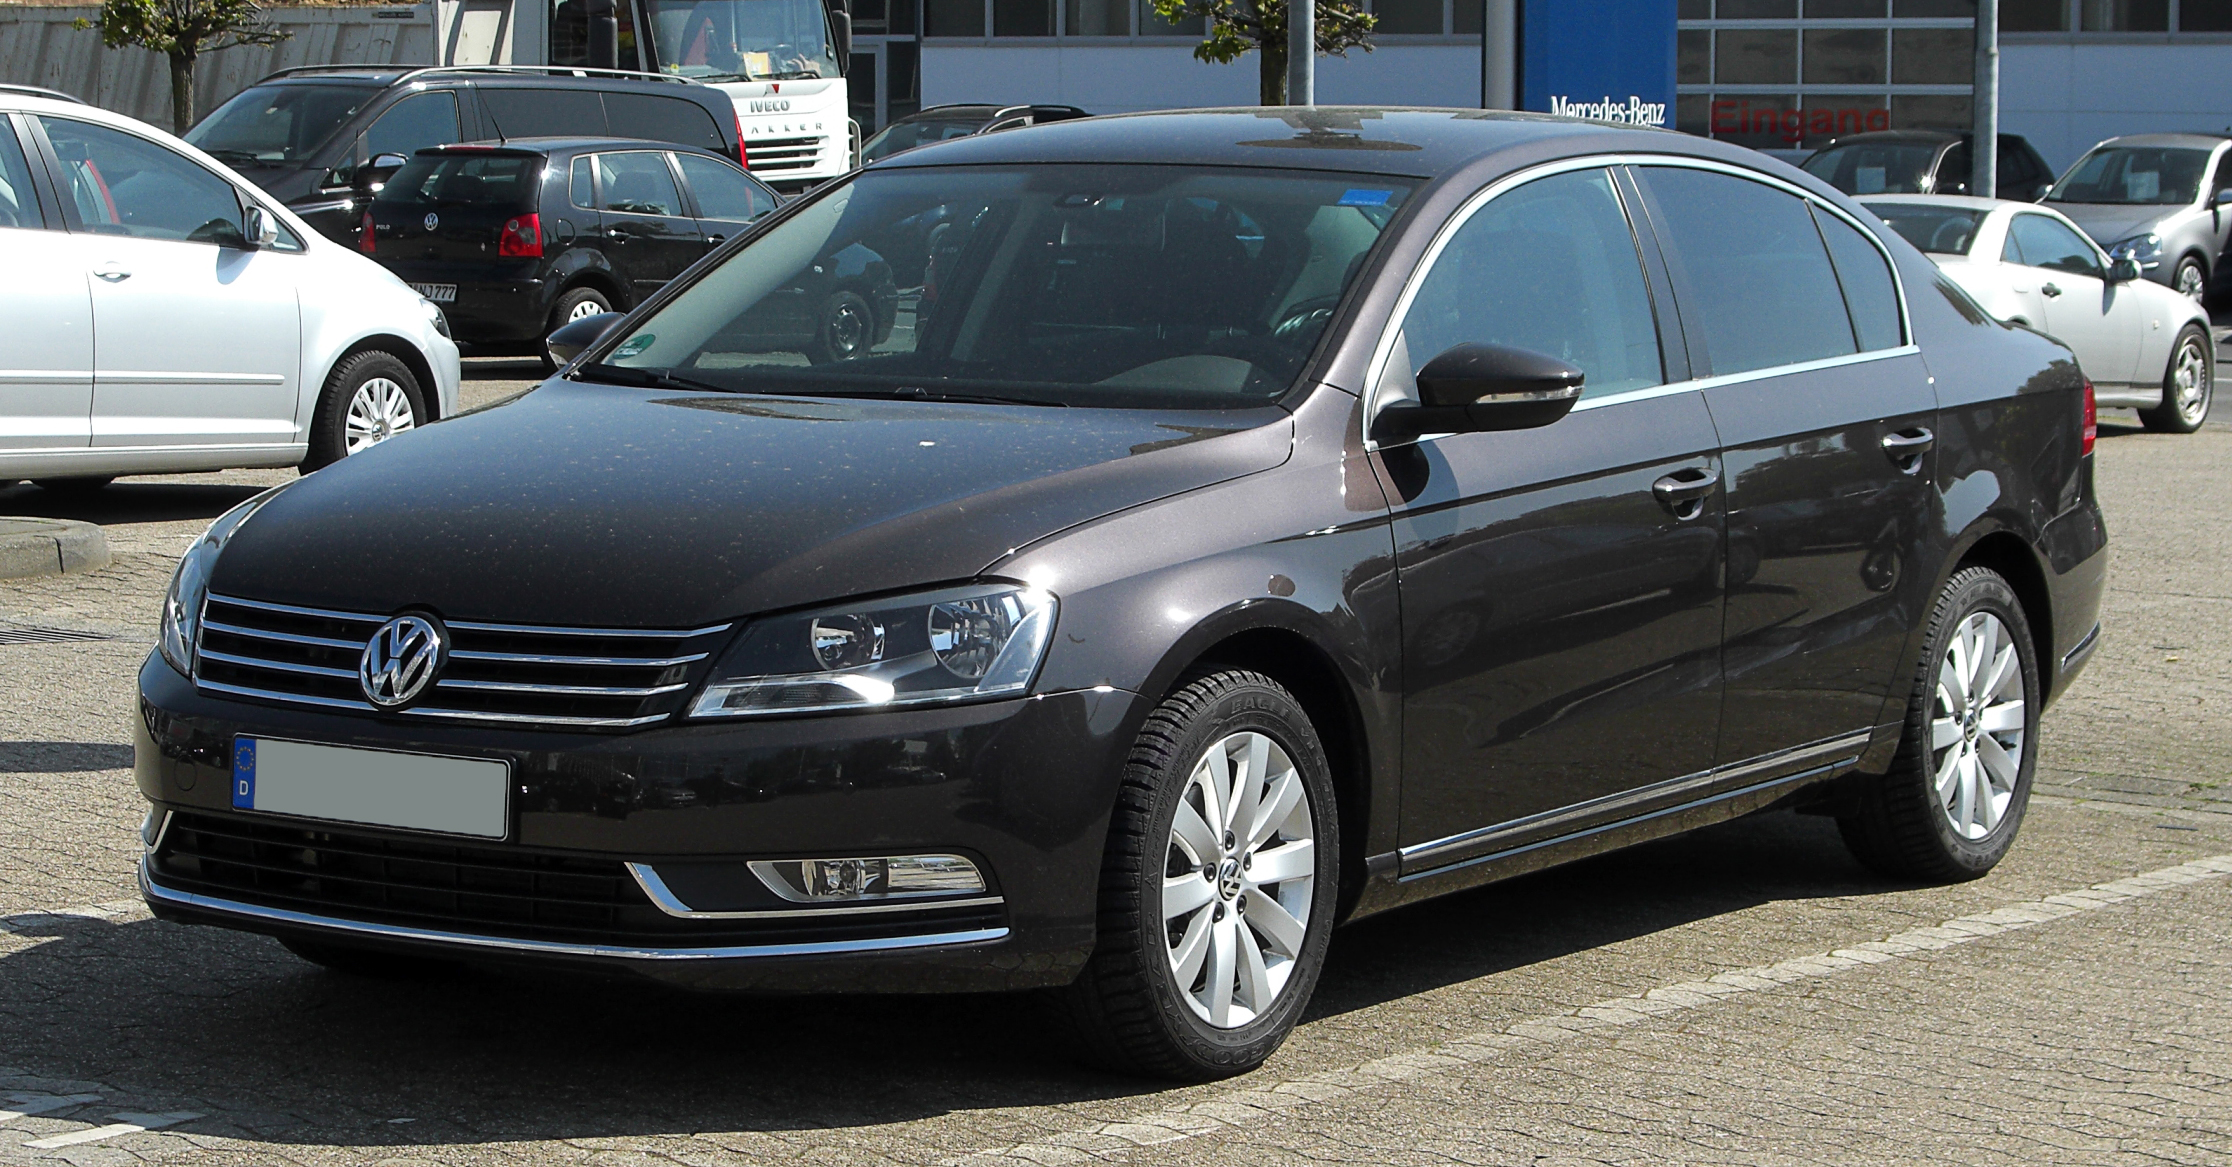 review reviews passat cutout volkswagen carbuyer saloon